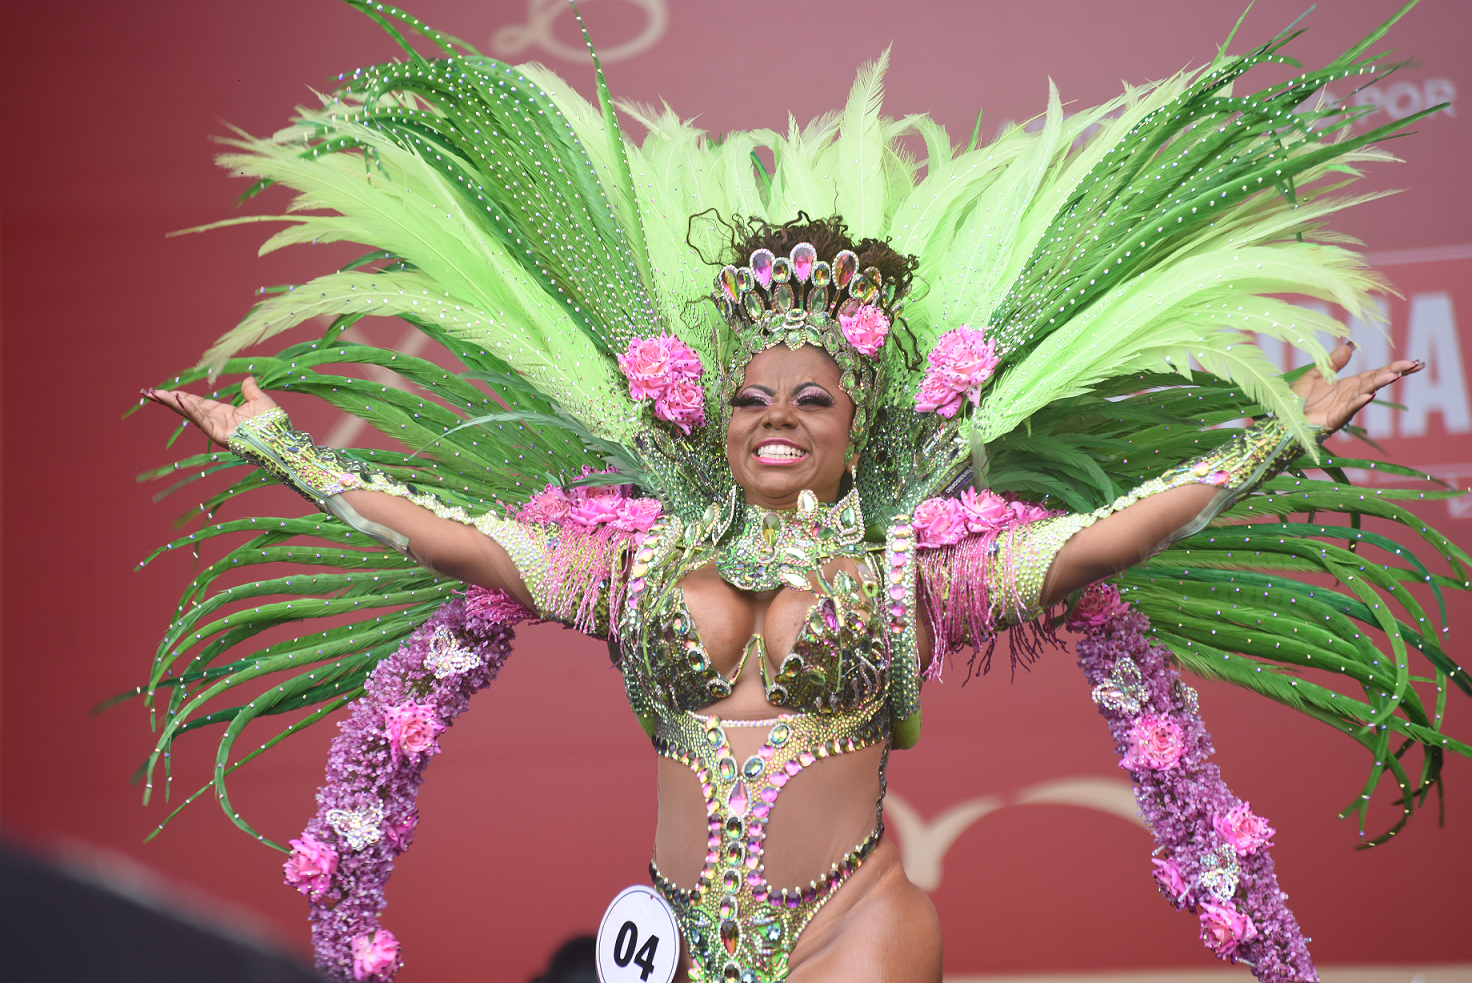 Bling carnival costumes  Nature Inspired - Floral Design Carnival Costume with Rhinestones and Crystals